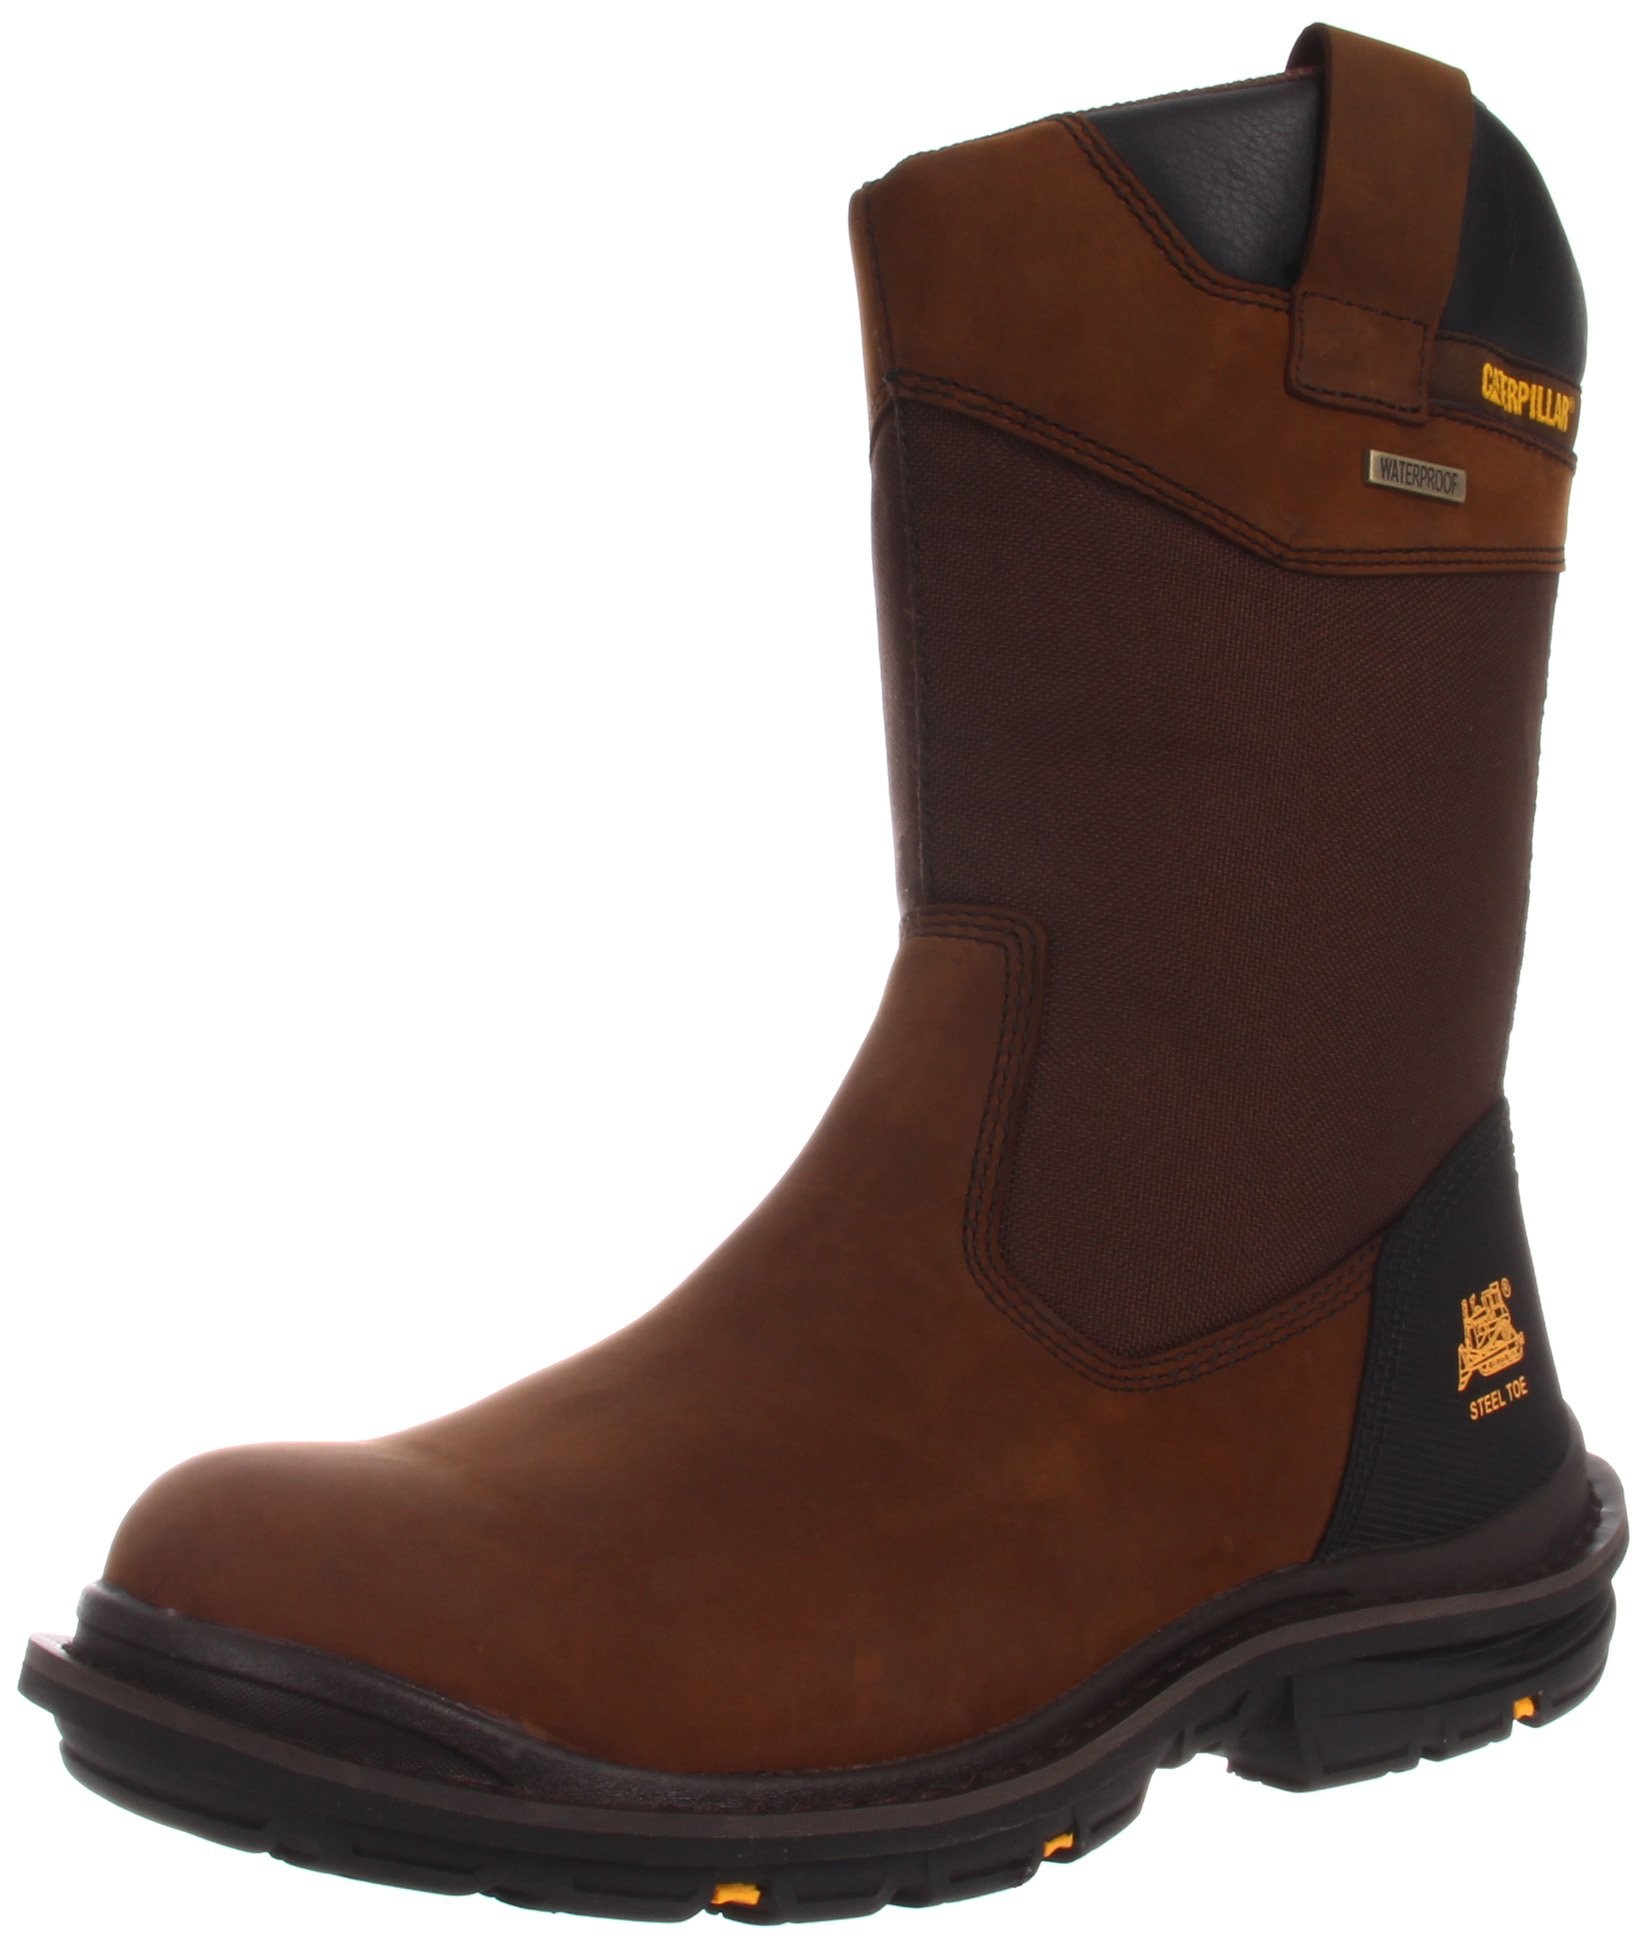 Caterpillar Men's Grist Waterproof Steel Toe Work Boot,Dark Brown,8.5 W US